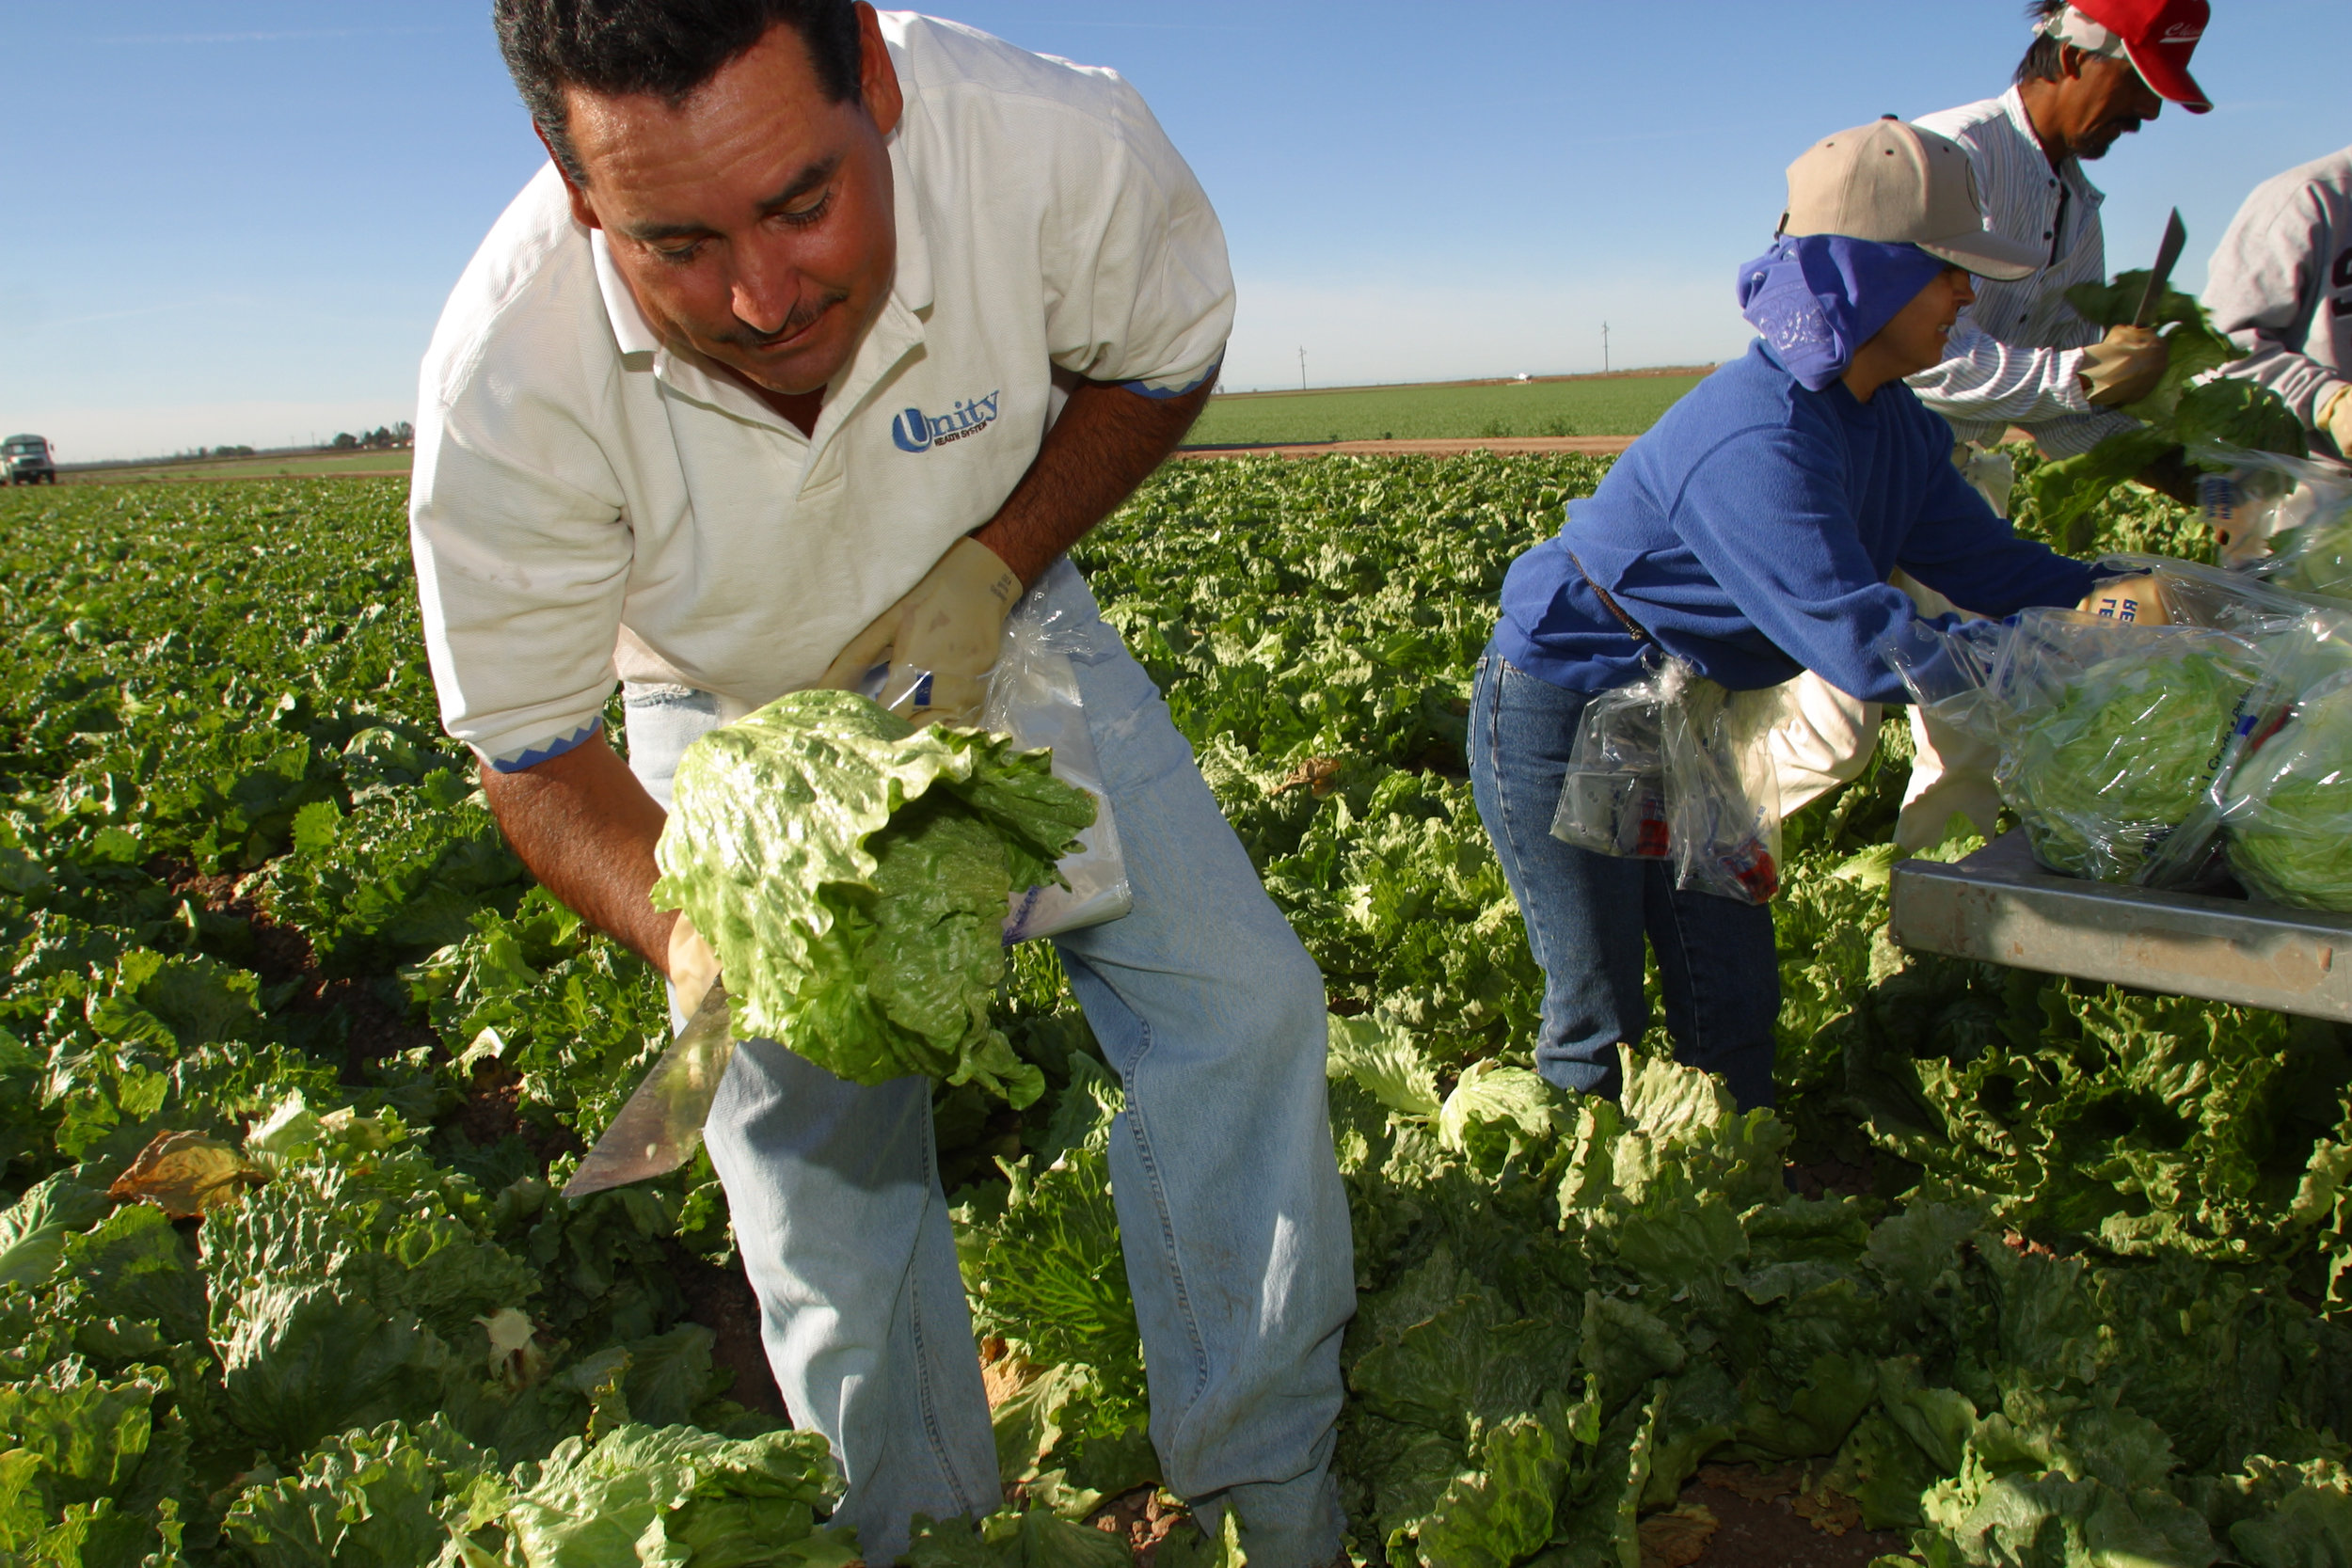 lettuce-field-worker1.jpg